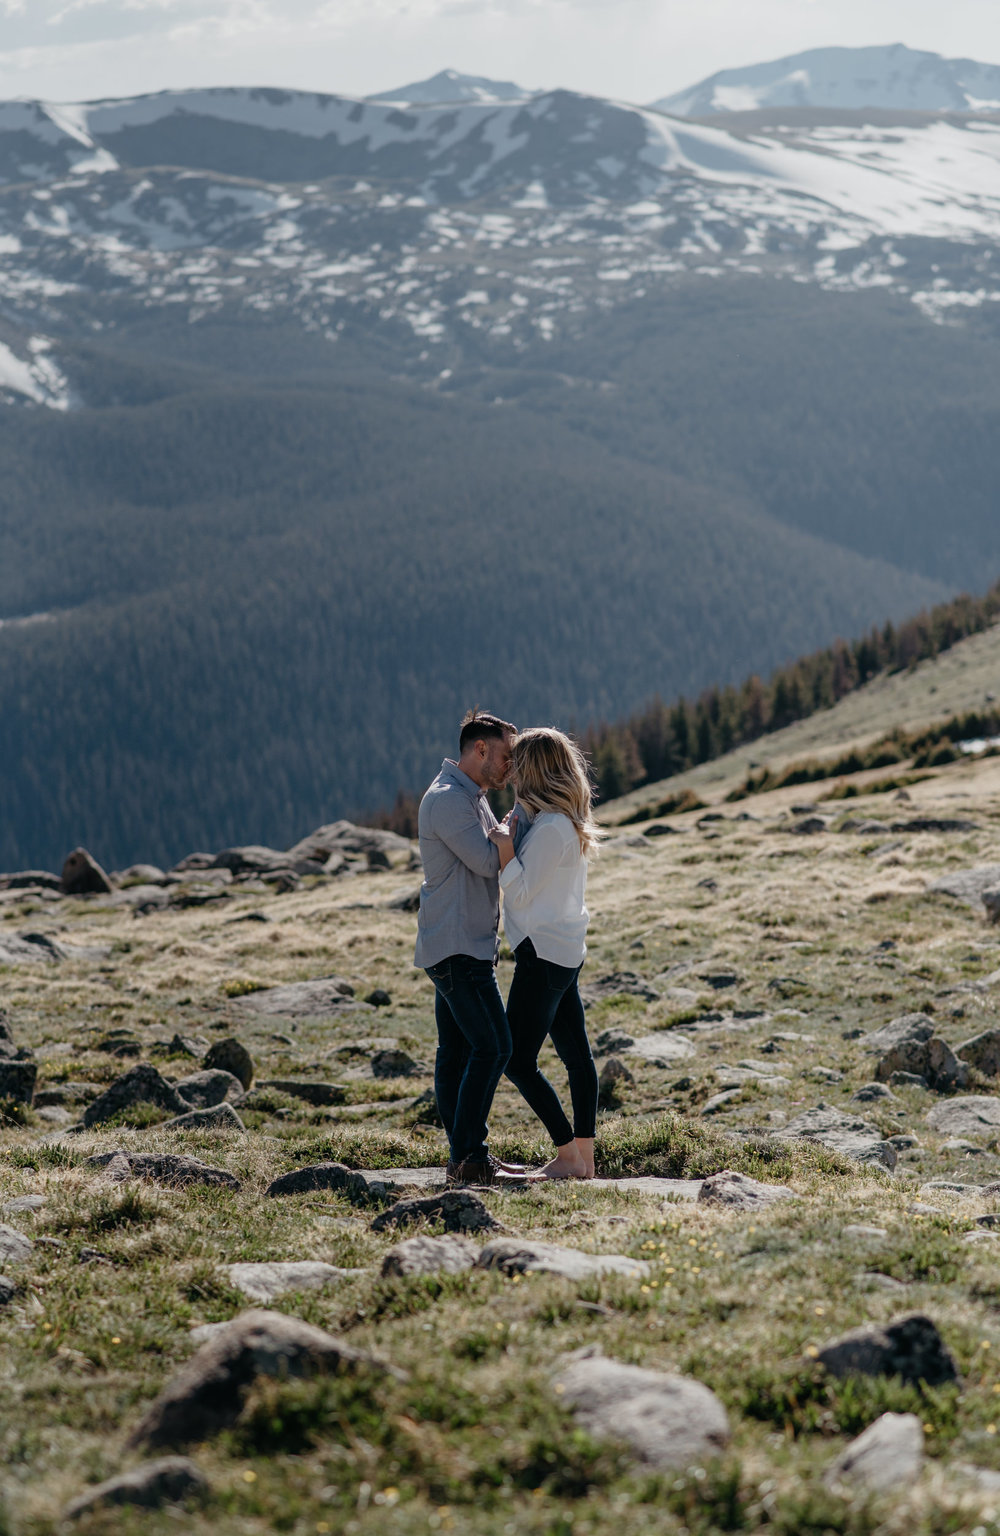 Colorado engagement session photographer. Trail Ridge Road engagement session